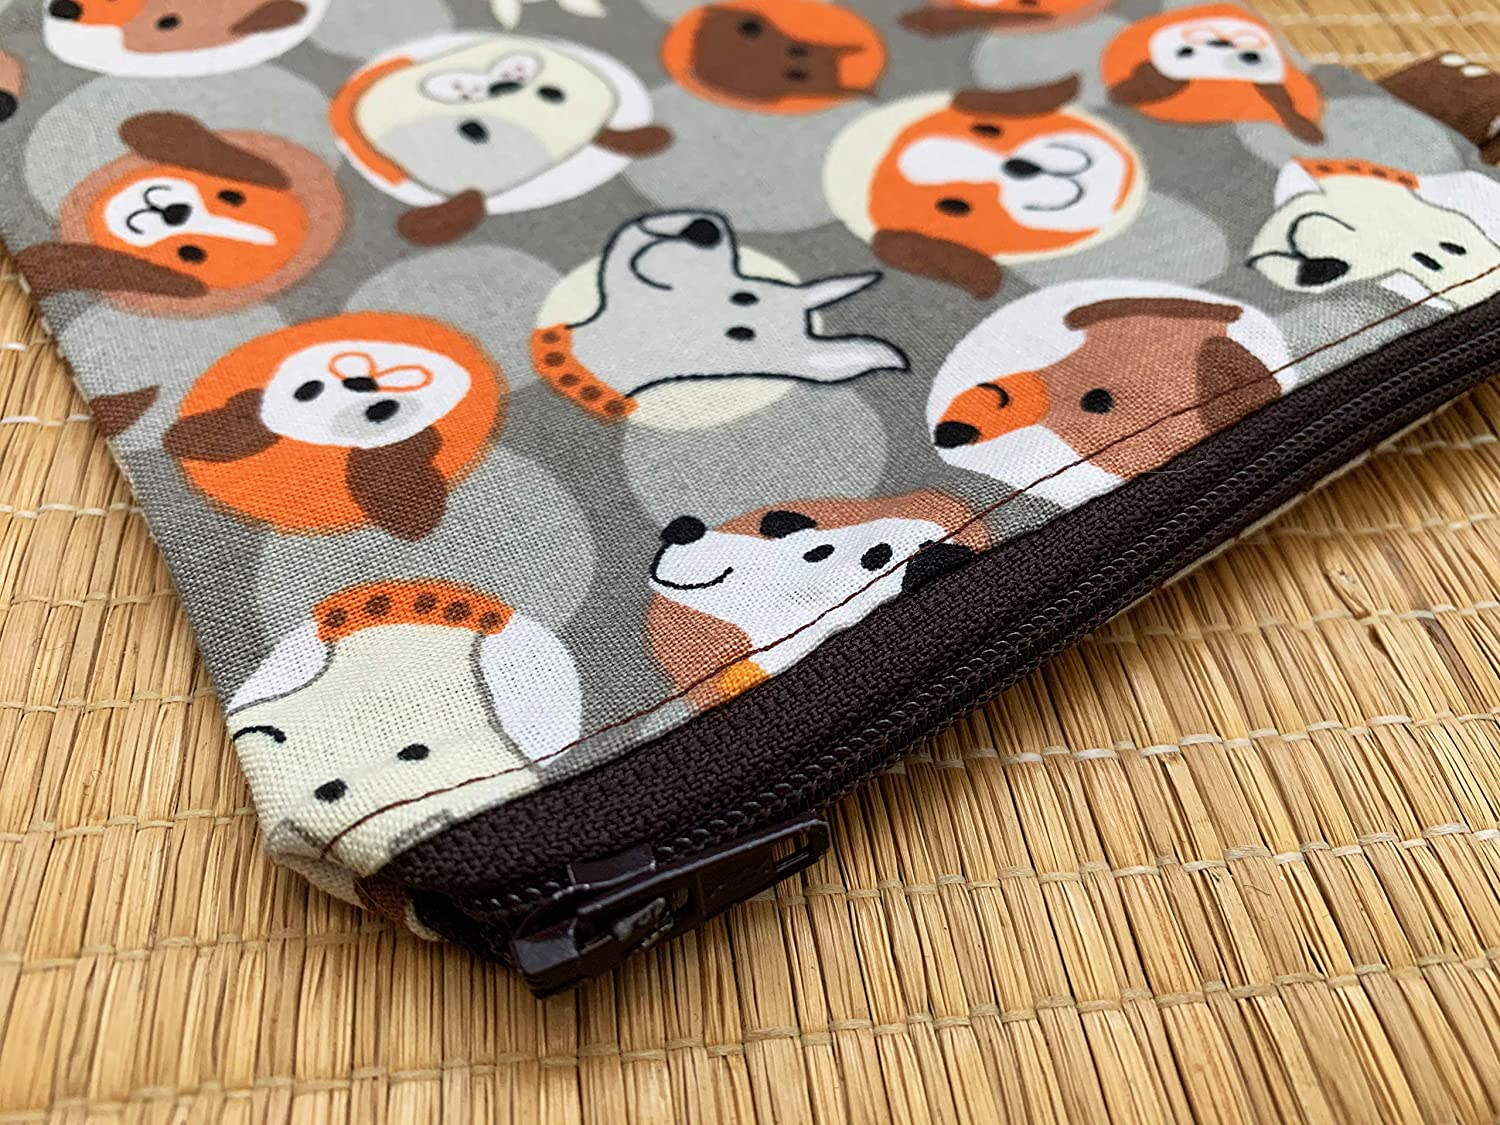 Gender Neutral Handmade in Canada Zippered Small Change Purse Treasures Holder Boys Gift Idea Puppies Pouch Dog Pattern Coin Pouch Childrens First Wallet Dog Lovers Change Purse